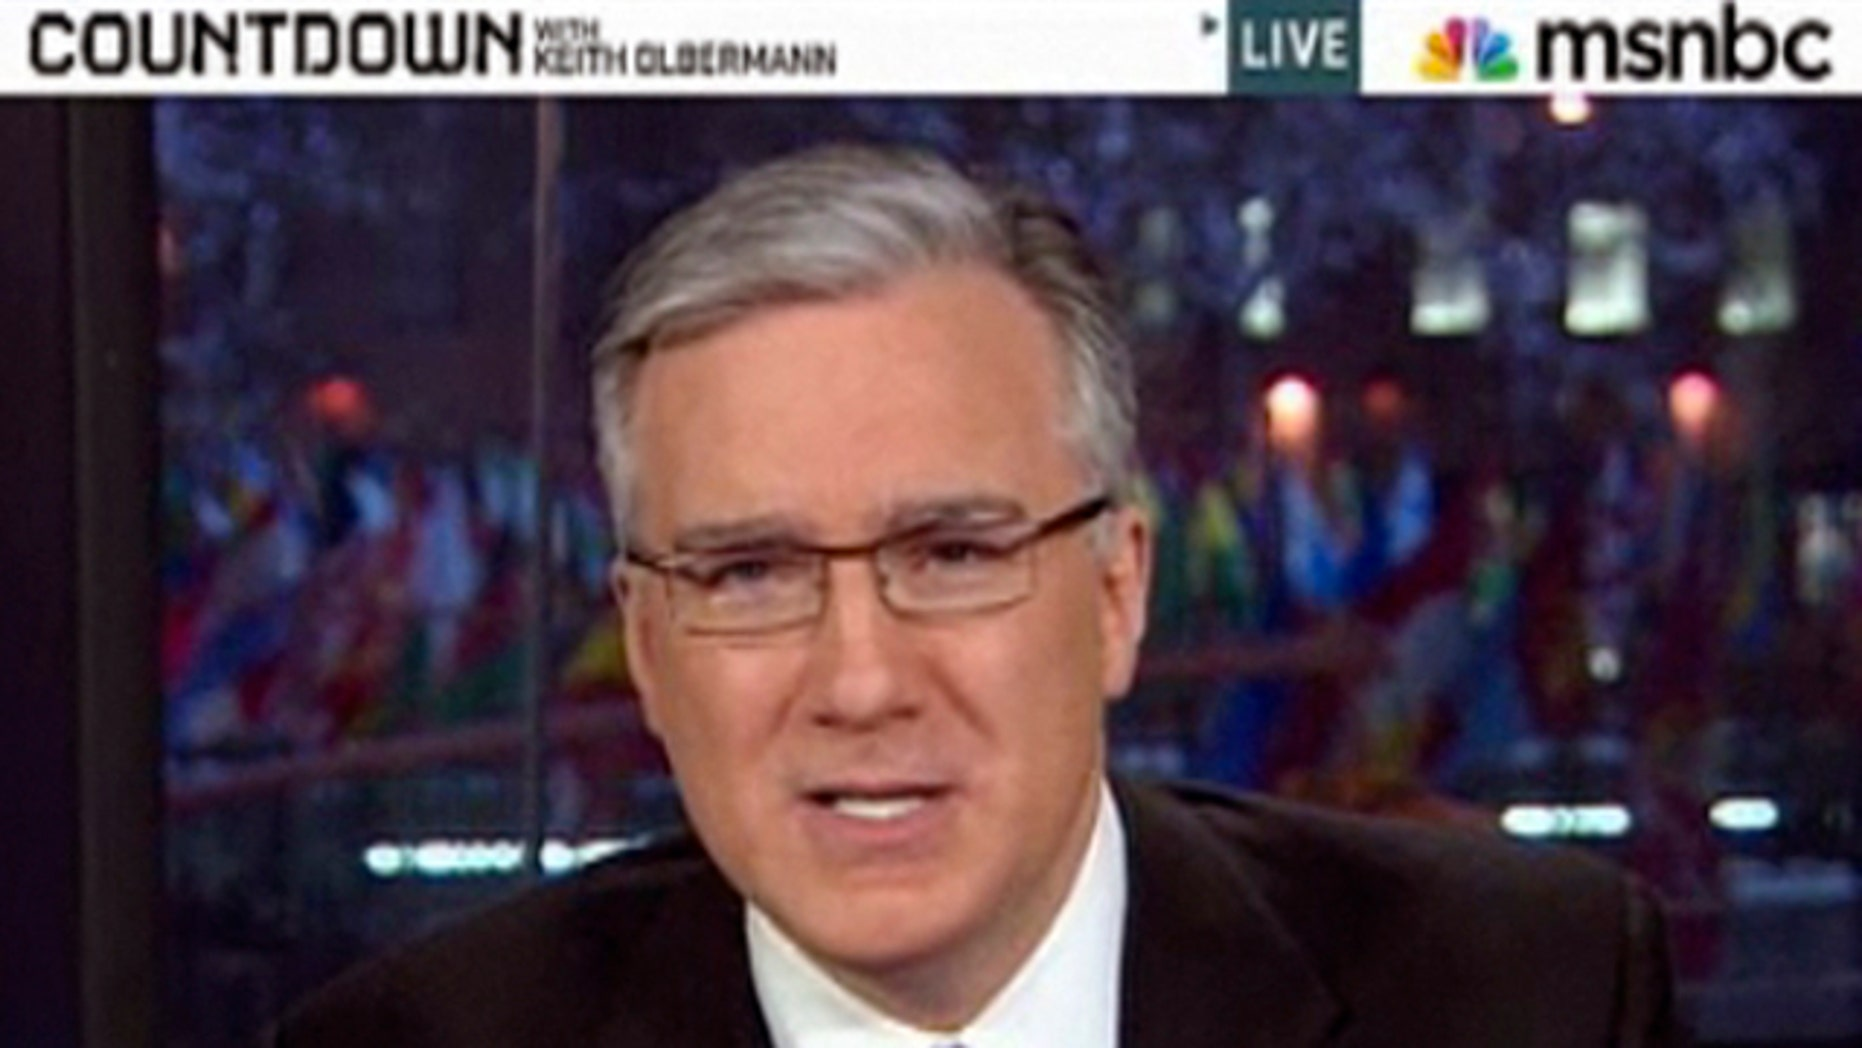 """Jan. 21, 2011: Keith Olbermann on """"Countdown"""" moments before he told viewers it was his last broadcast"""